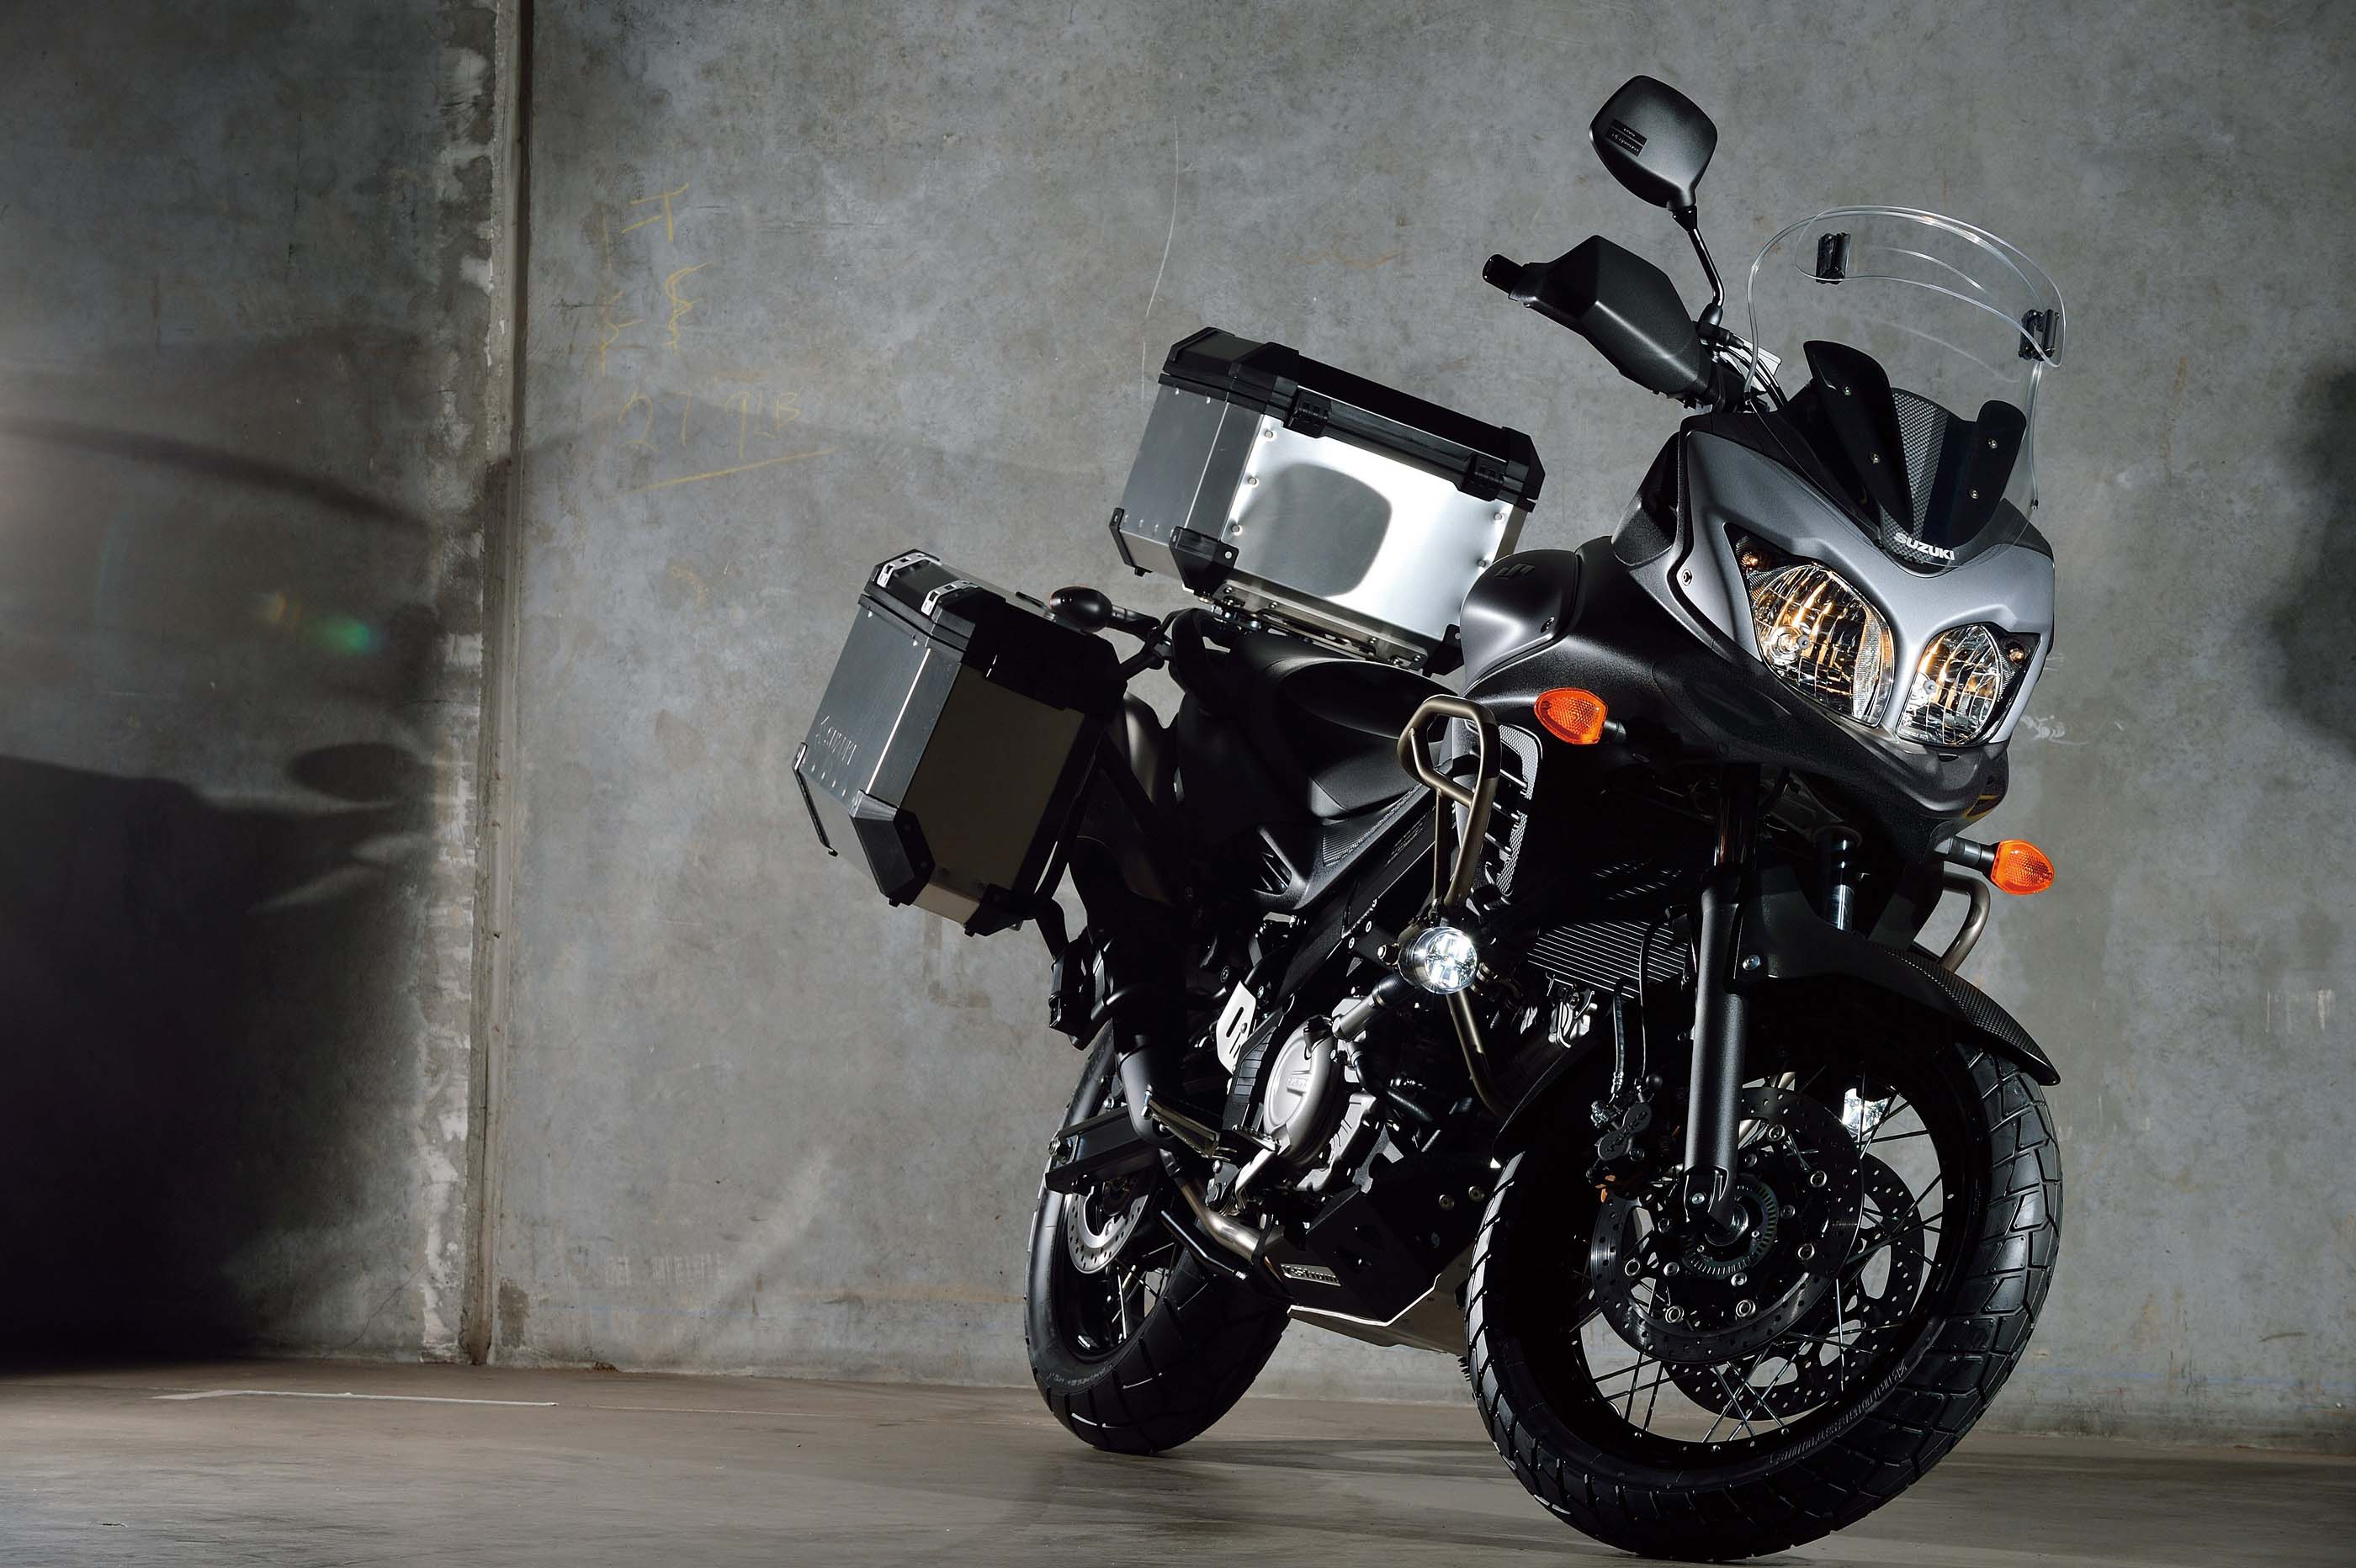 2015 suzuki v strom 650xt abs wee strom gets a beak asphalt rubber. Black Bedroom Furniture Sets. Home Design Ideas